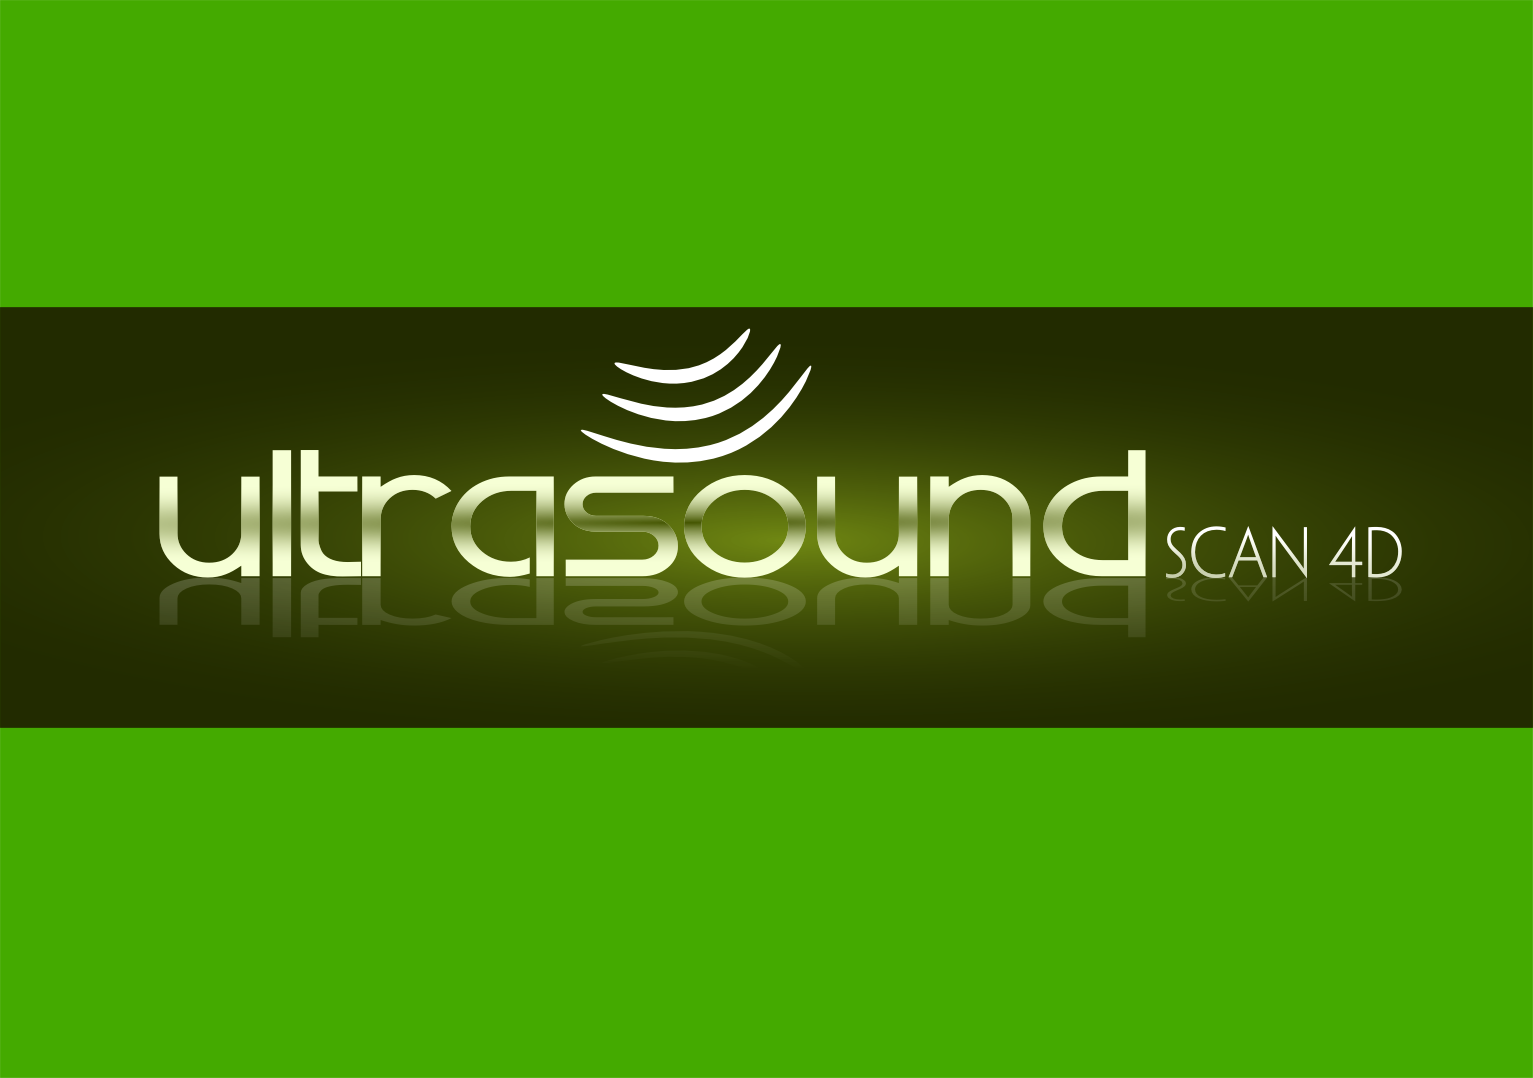 Logo Design by Joseph calunsag Cagaanan - Entry No. 10 in the Logo Design Contest Ultrasound Scan 4D Logo Design.